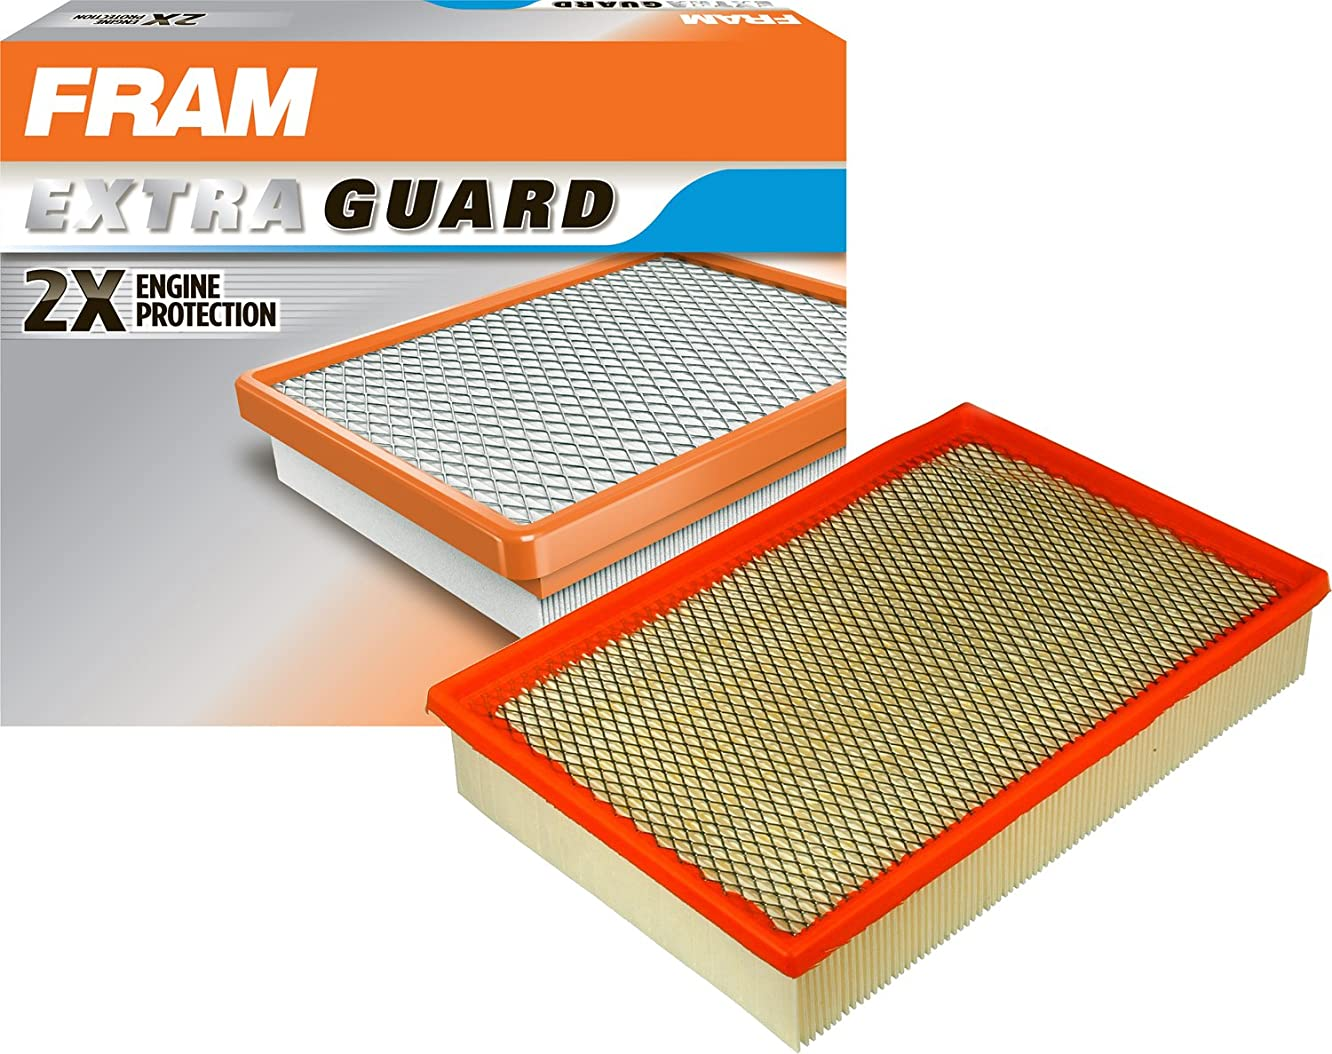 FRAM CA9073 Extra Guard Rectangular Panel Air Filter